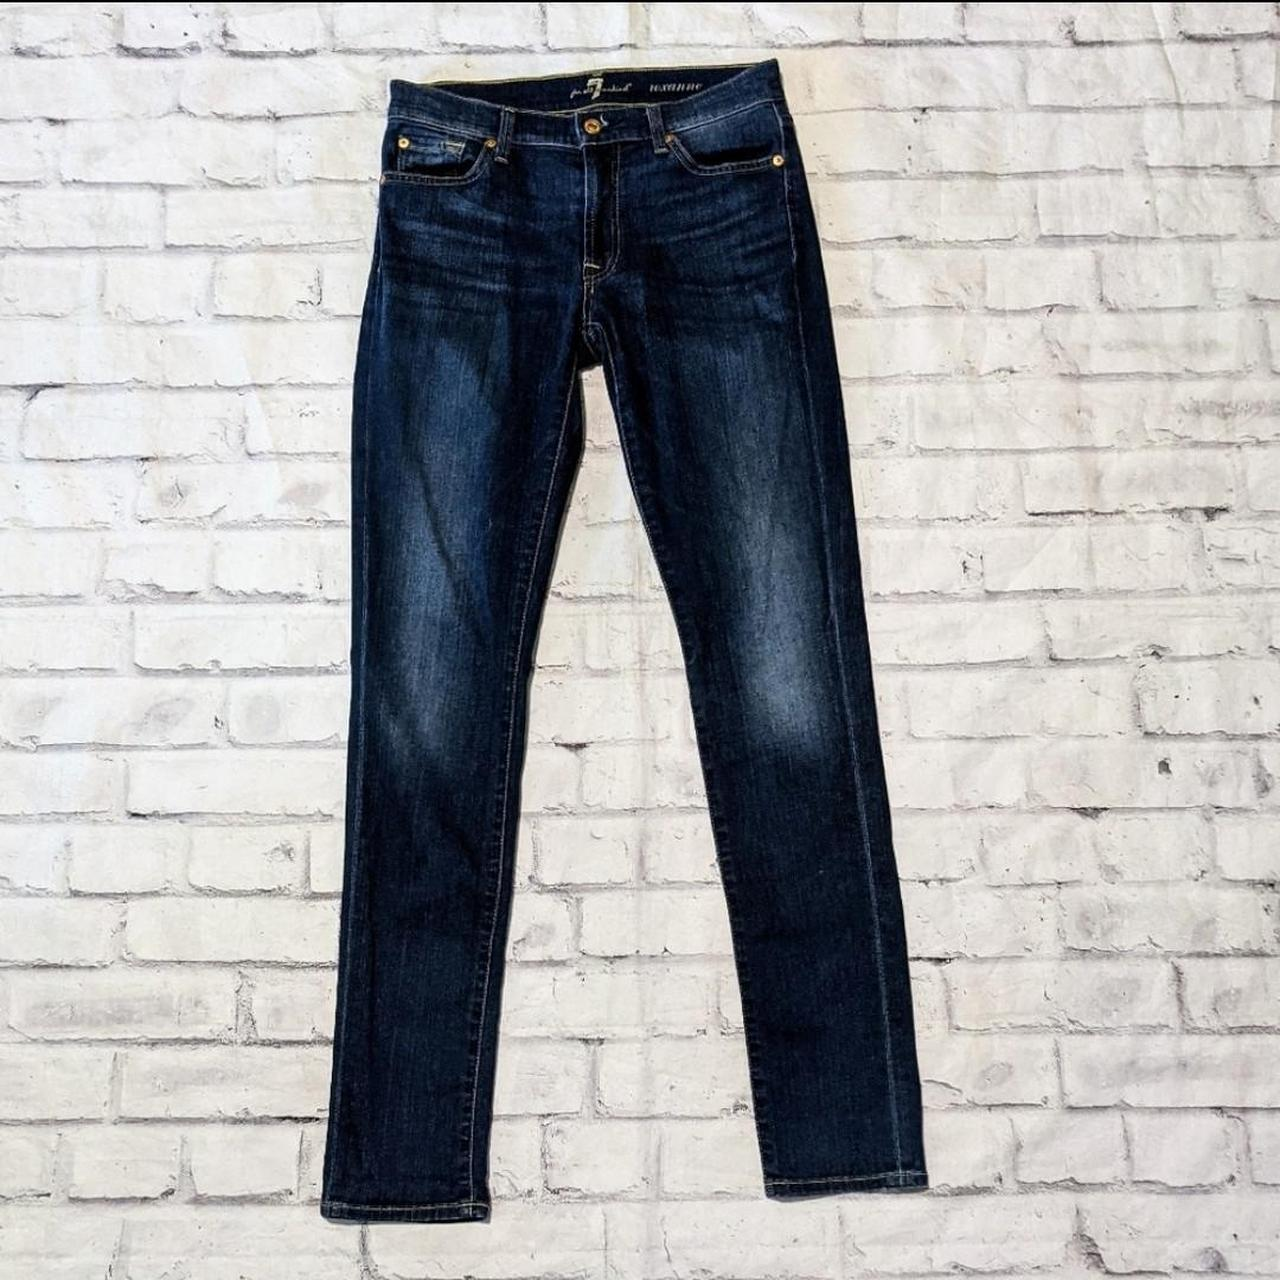 Product Image 1 - 7 for all Mankind Roxanne